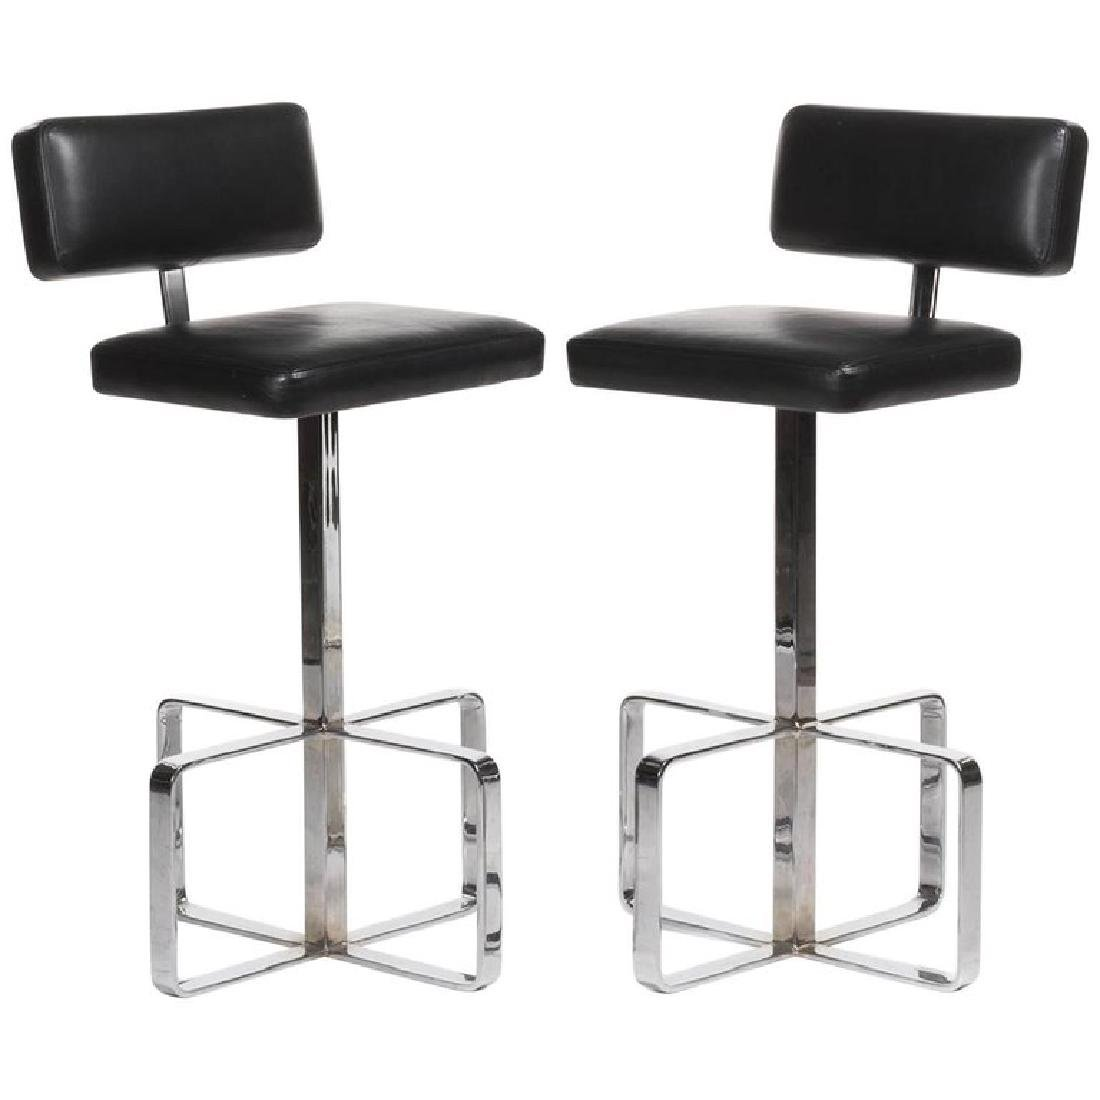 Pair of Italian 1970s Leather and Chrome Swivel